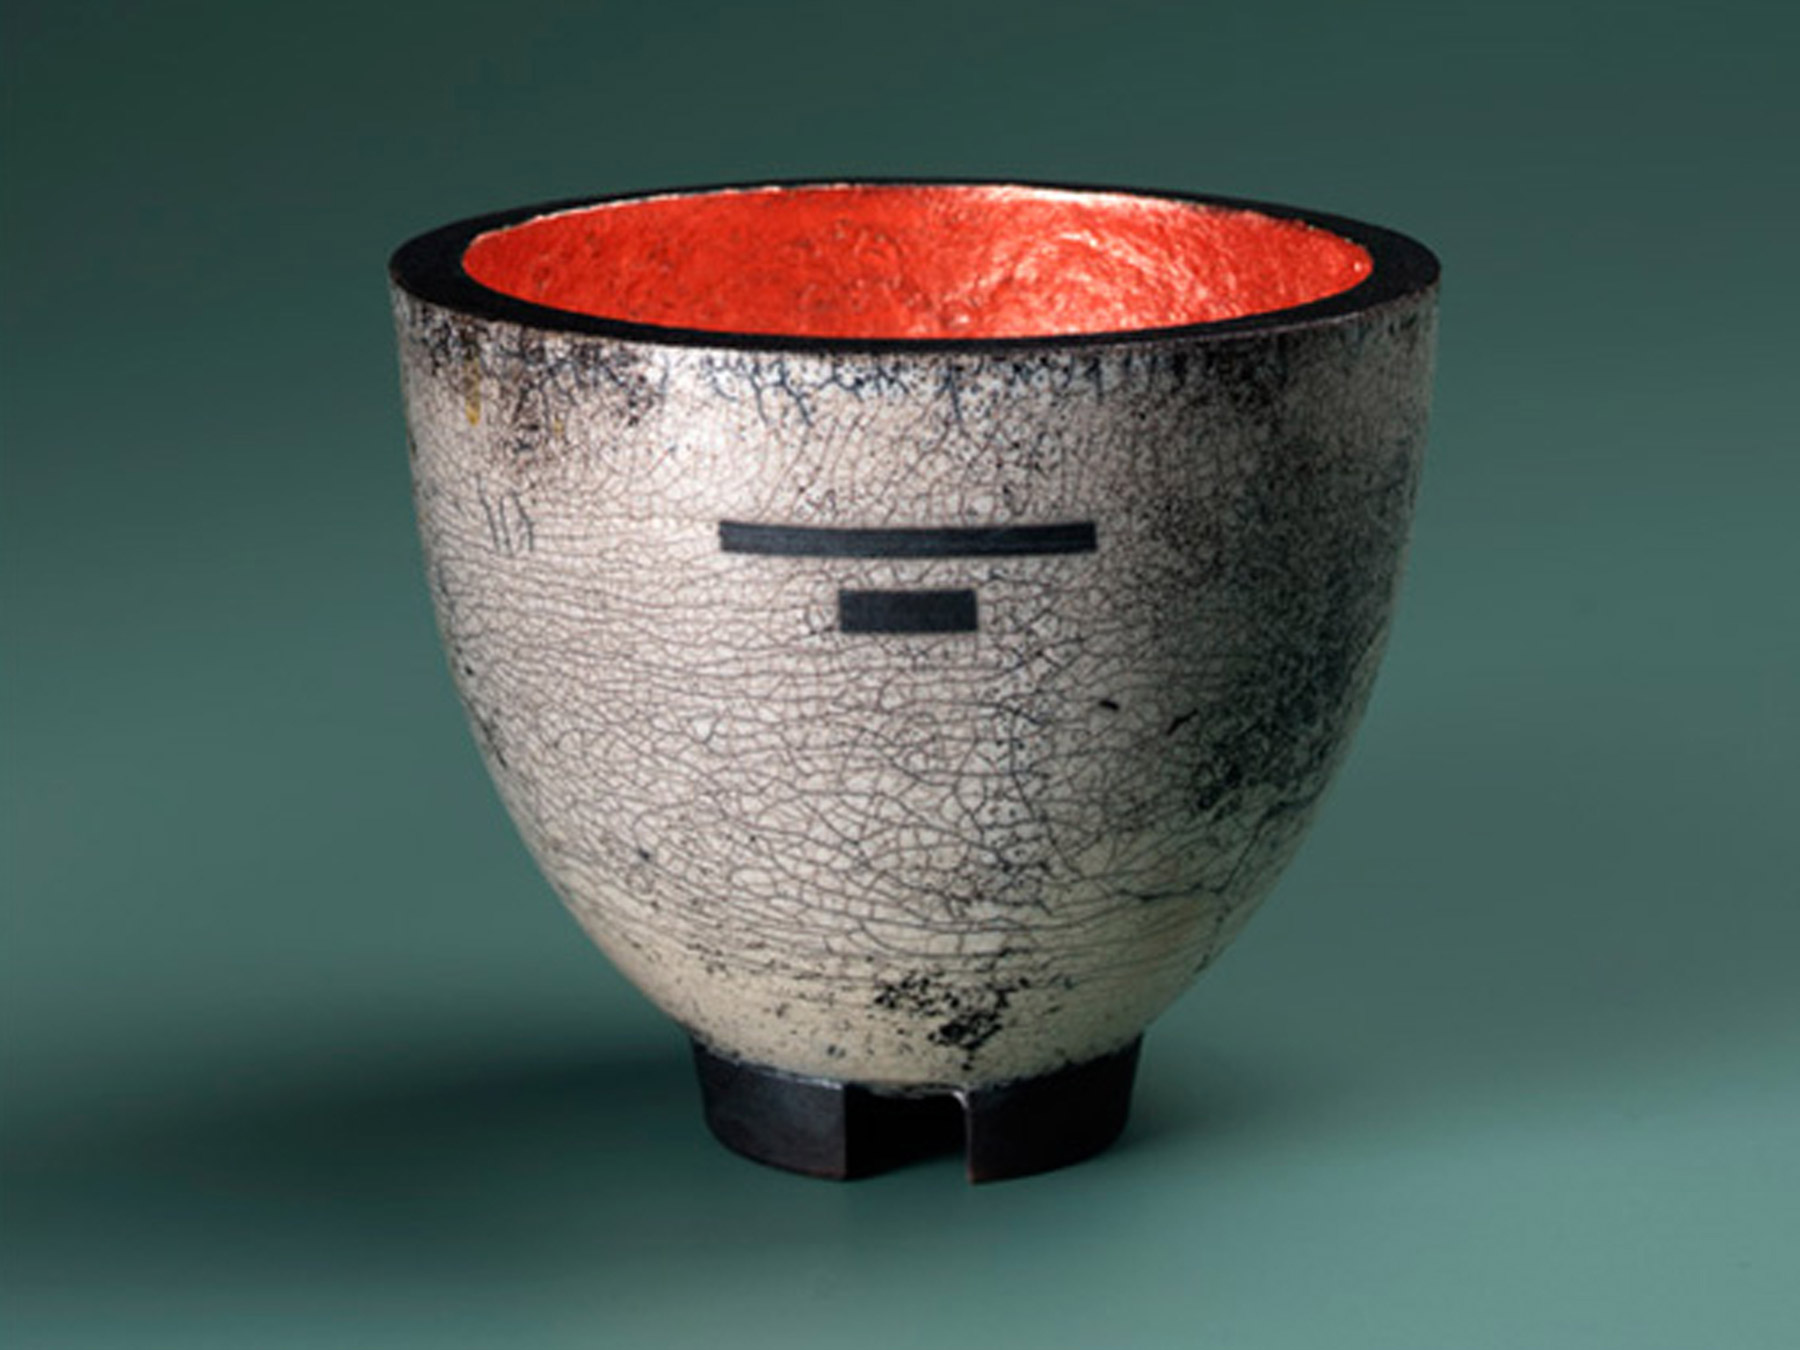 TOM HUBBARD CERAMICS Raku fired with resist and copper leaf